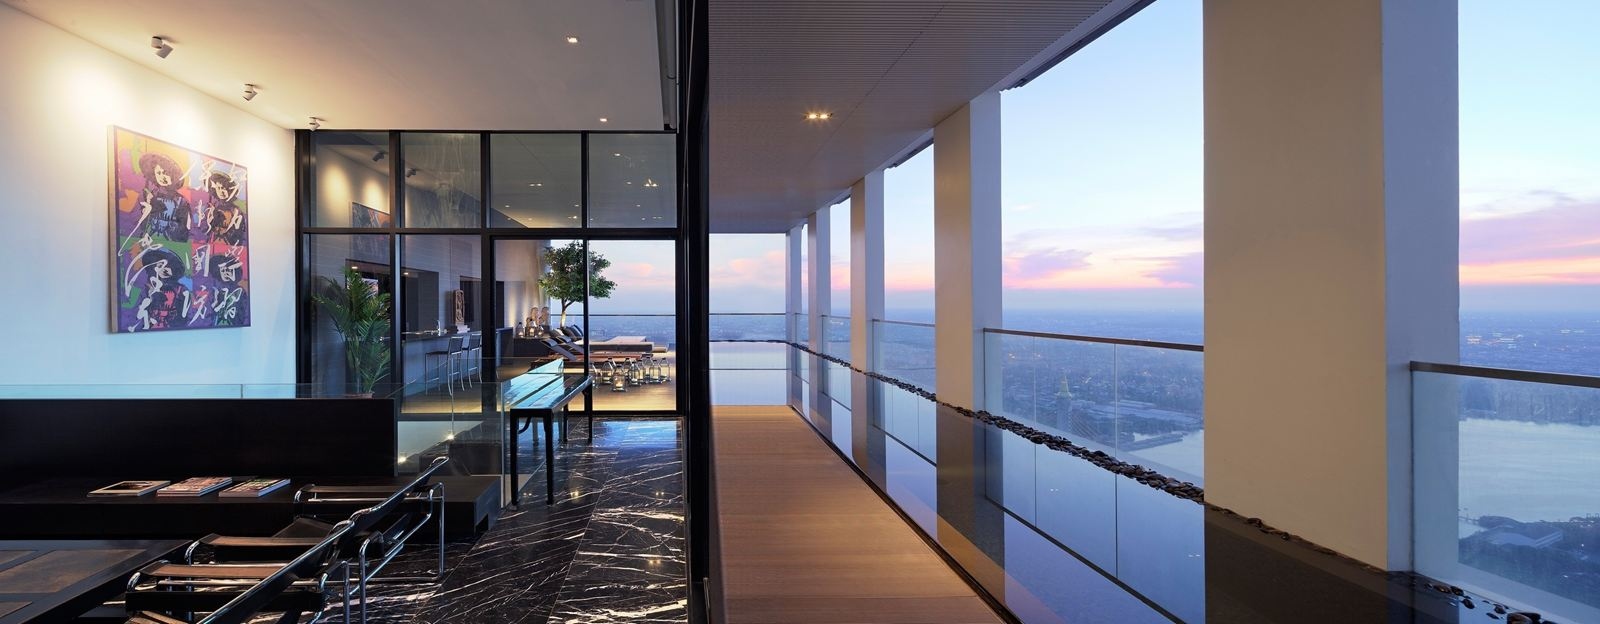 PANO Penthouse in Bangkok, Thailand by AAd